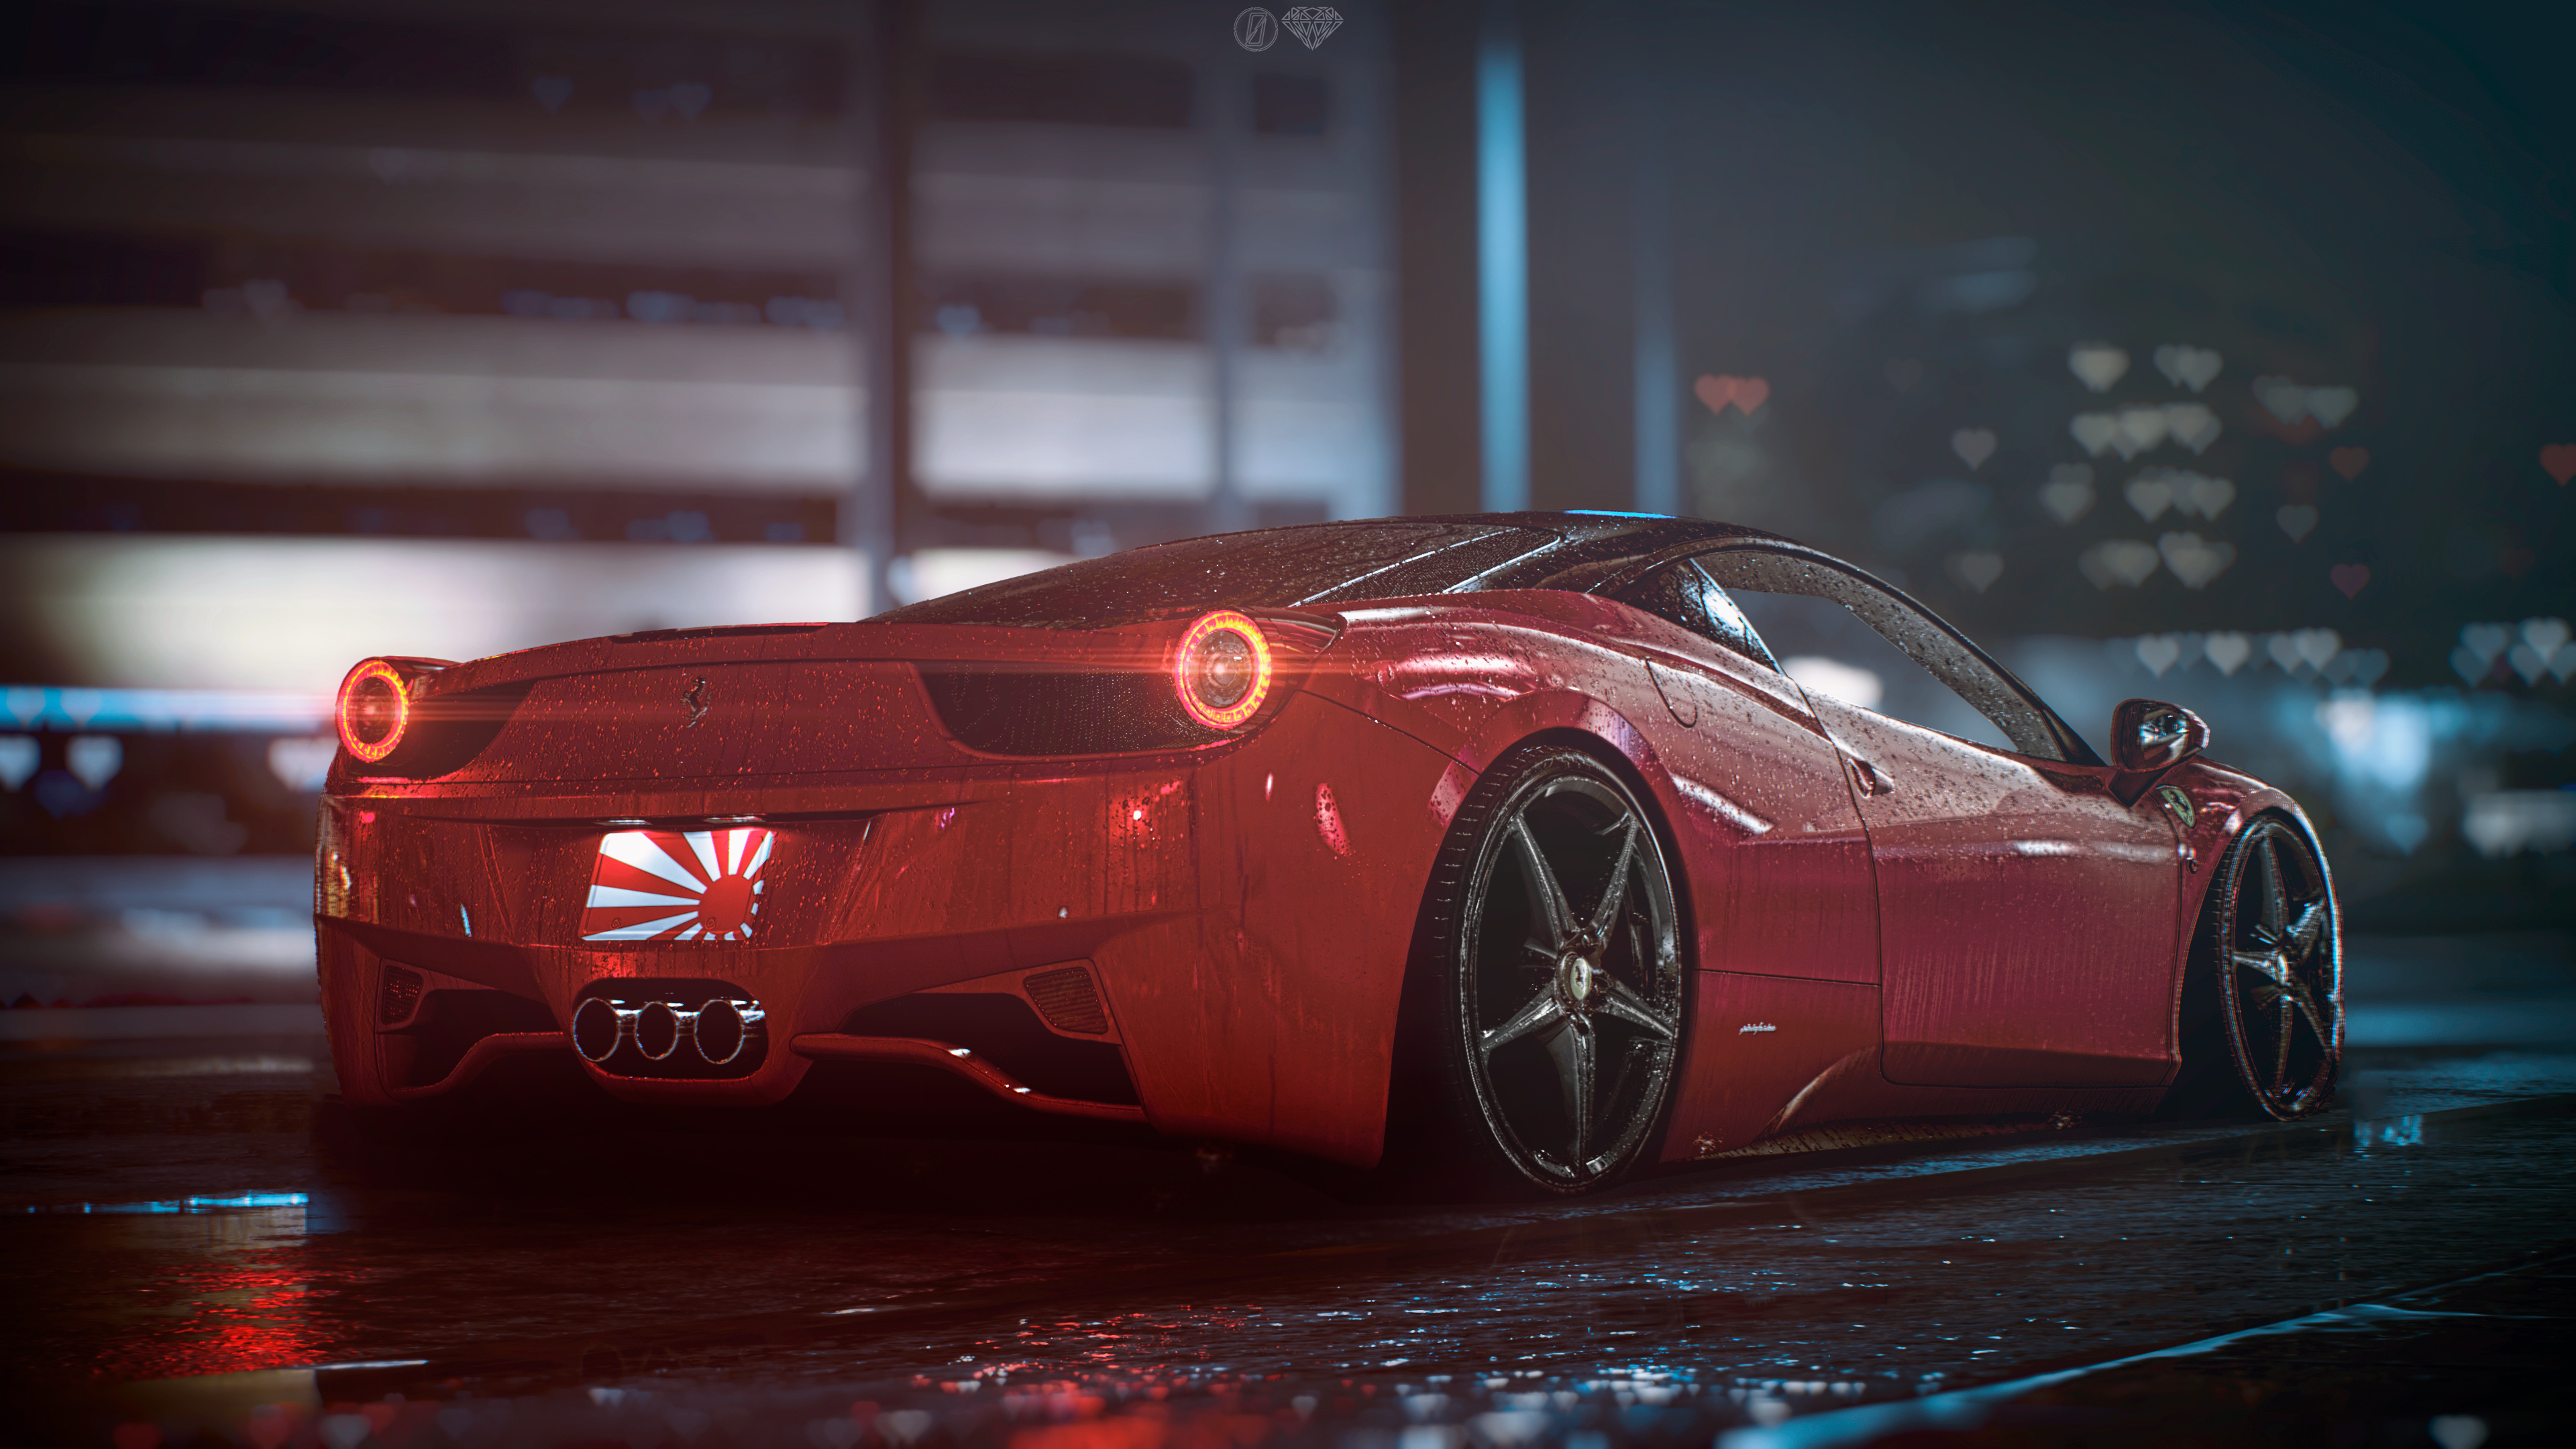 1366x768 Ferrari 458 Italy 4k 1366x768 Resolution Hd 4k Wallpapers Images Backgrounds Photos And Pictures